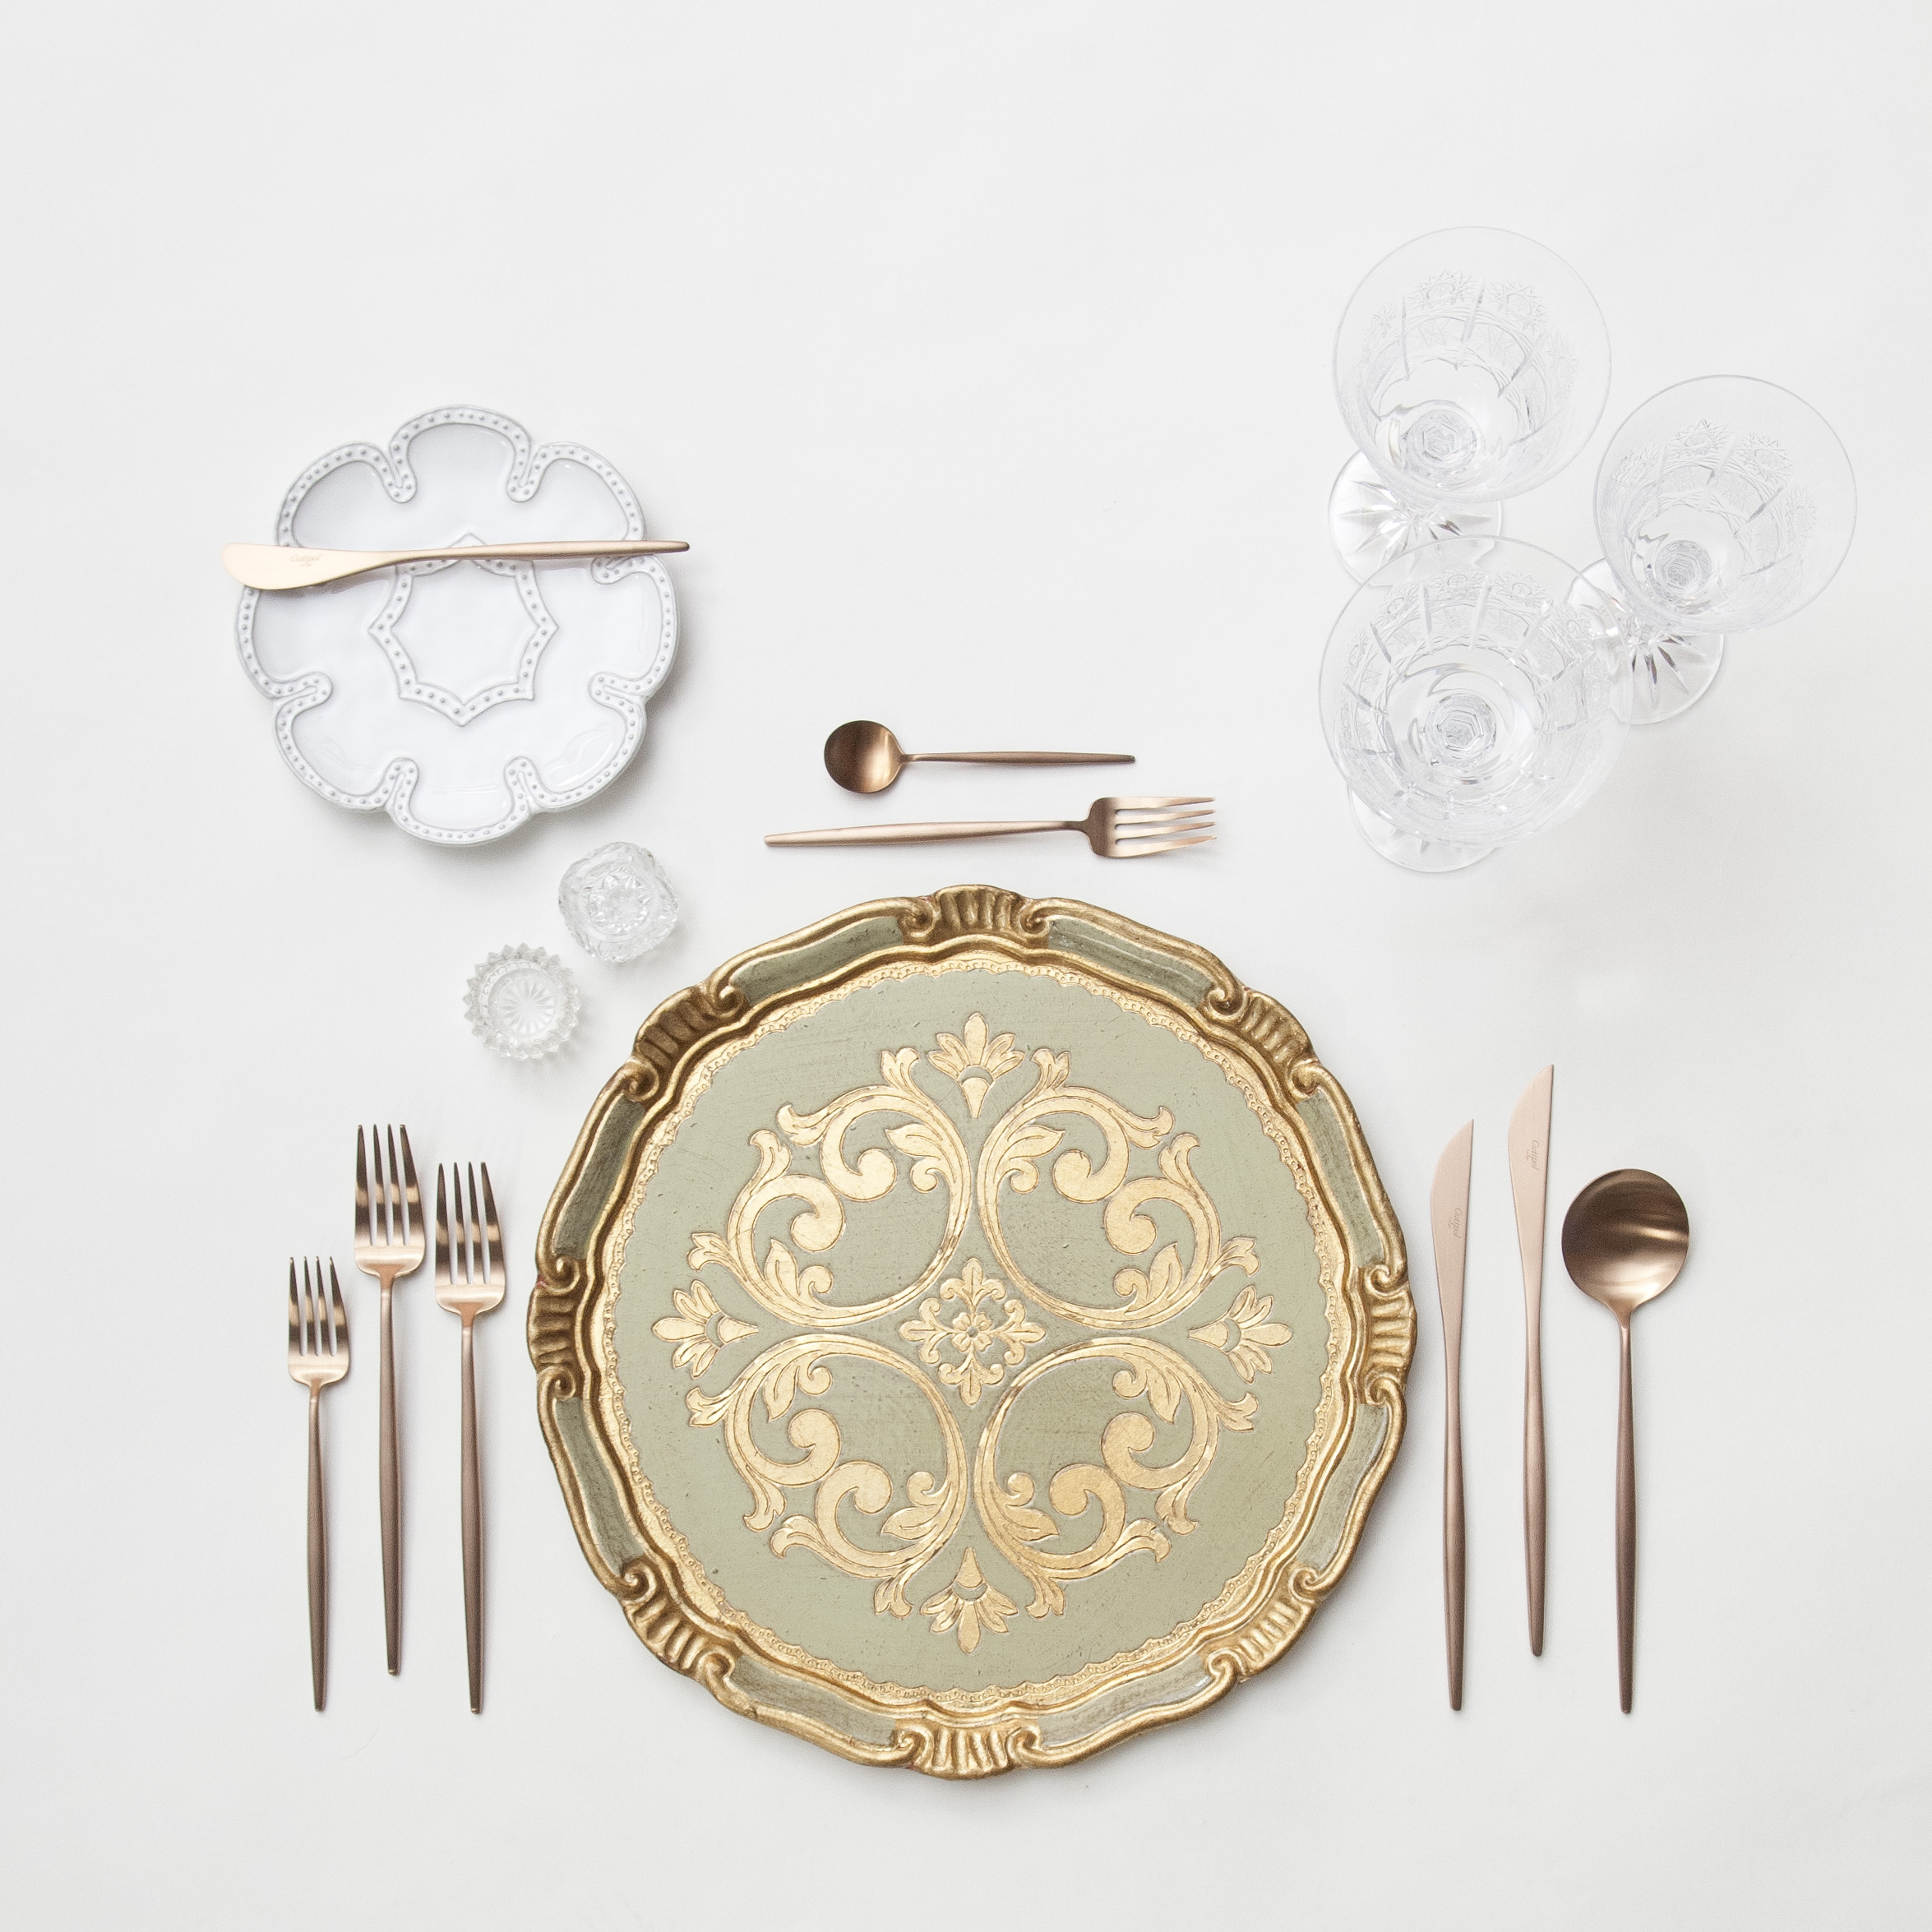 RENT: Florentine Chargers in Sage/Gold + Signature Collection Dinnerware + Moon Flatware in Brushed Rose Gold + Czech Crystal Stemware + Antique Crystal Salt Cellars  SHOP:Florentine Chargers in Sage/Gold +Moon Flatware in Brushed Rose Gold